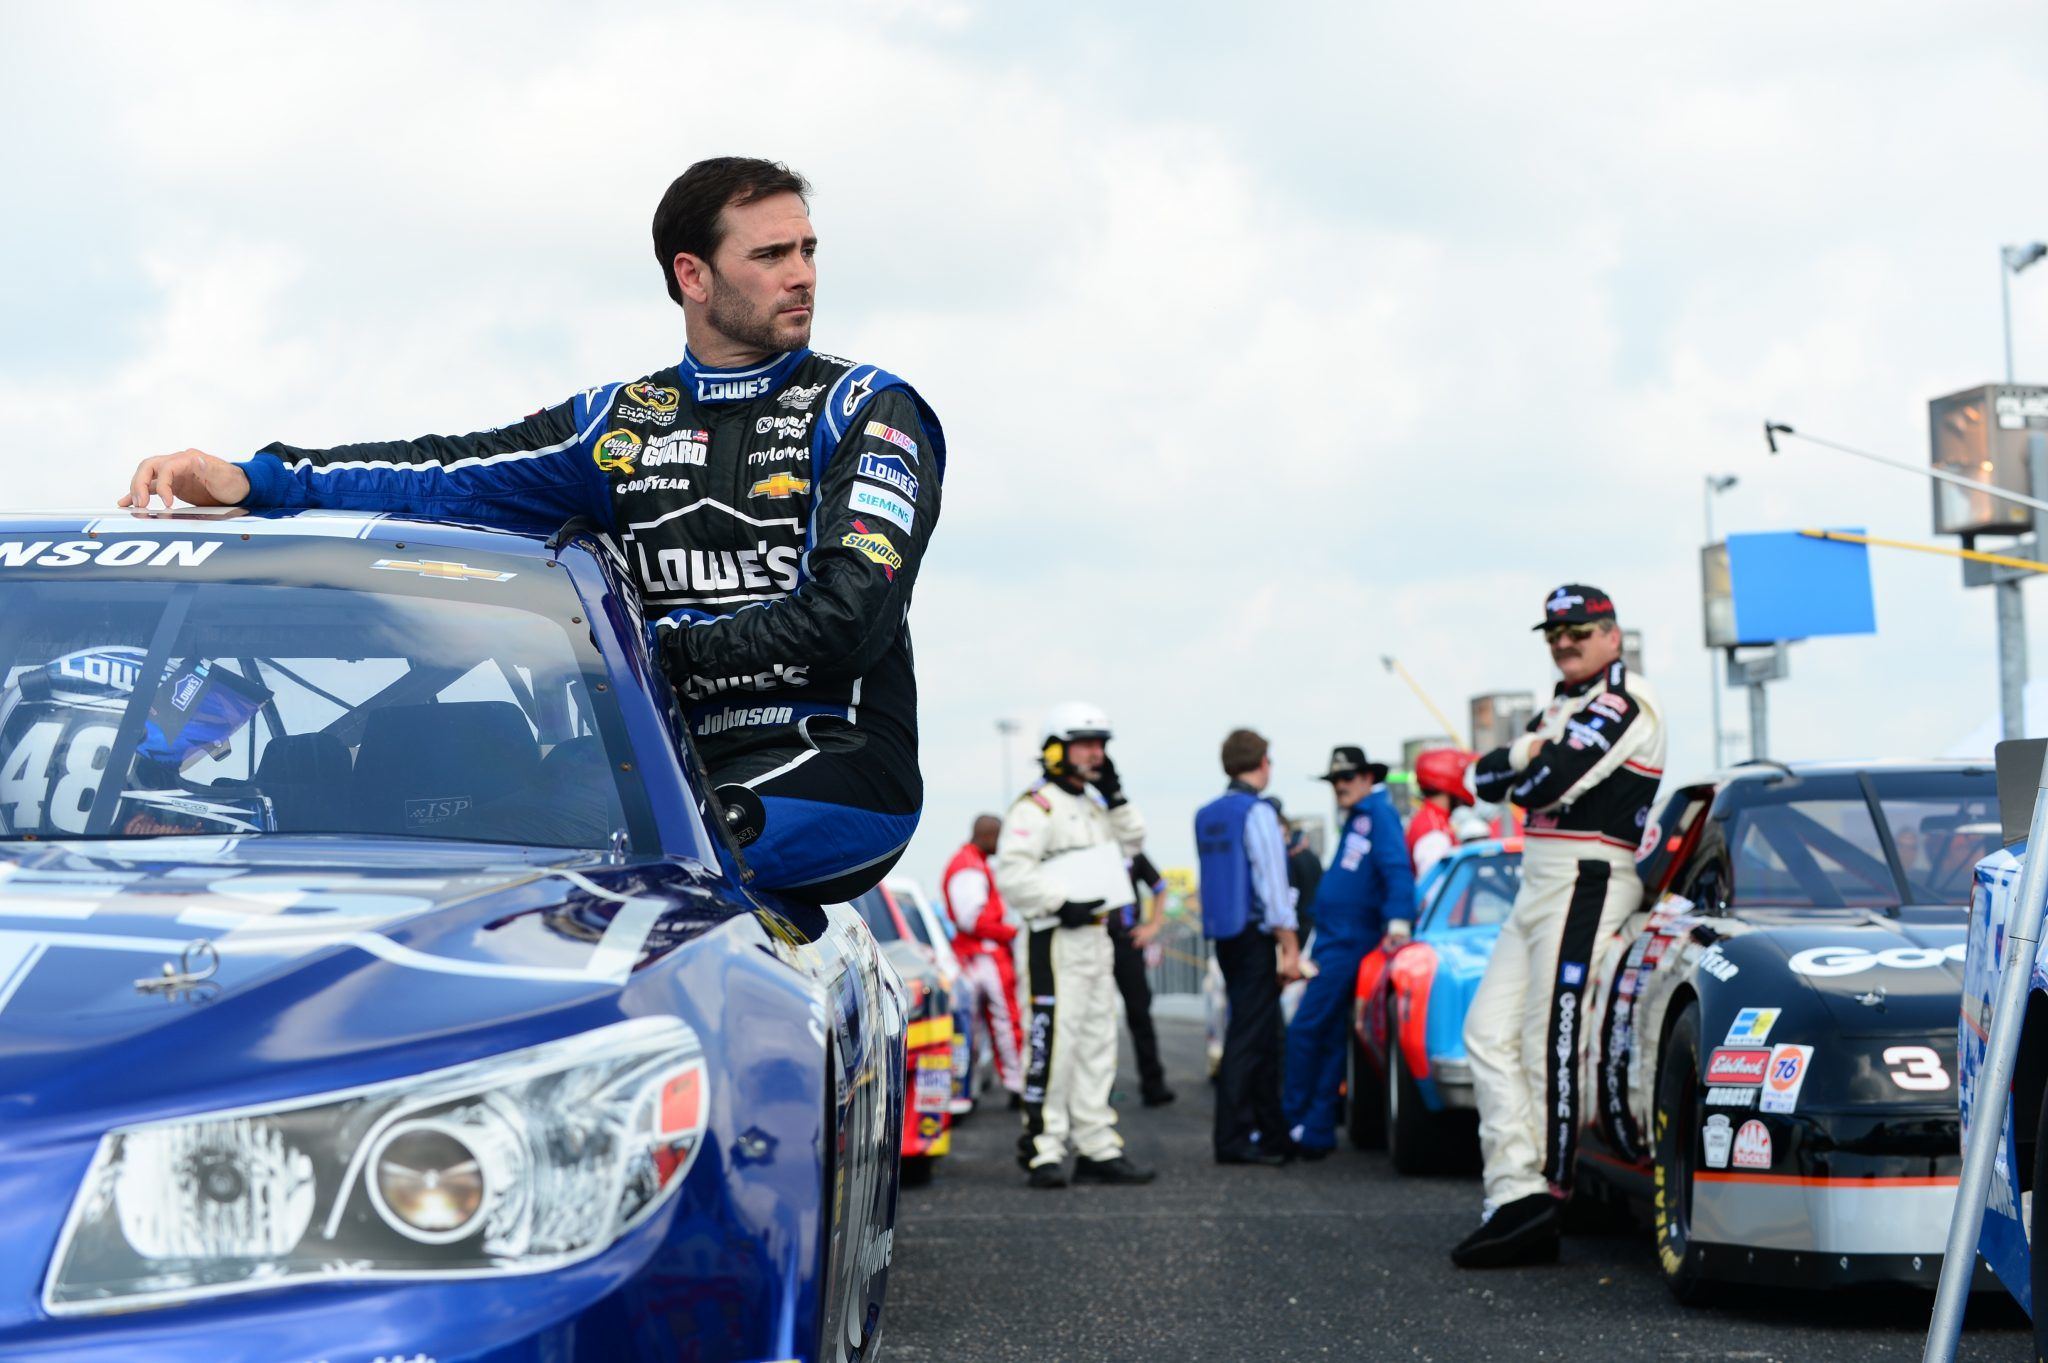 market analysis of nascar Swot analysis of nascar posted on march 14, 2016 april 27, 2016 by griffinscollegeboytry nascar is in a position unlike any other sport when it comes to strengths, weaknesses, opportunities, and threats.